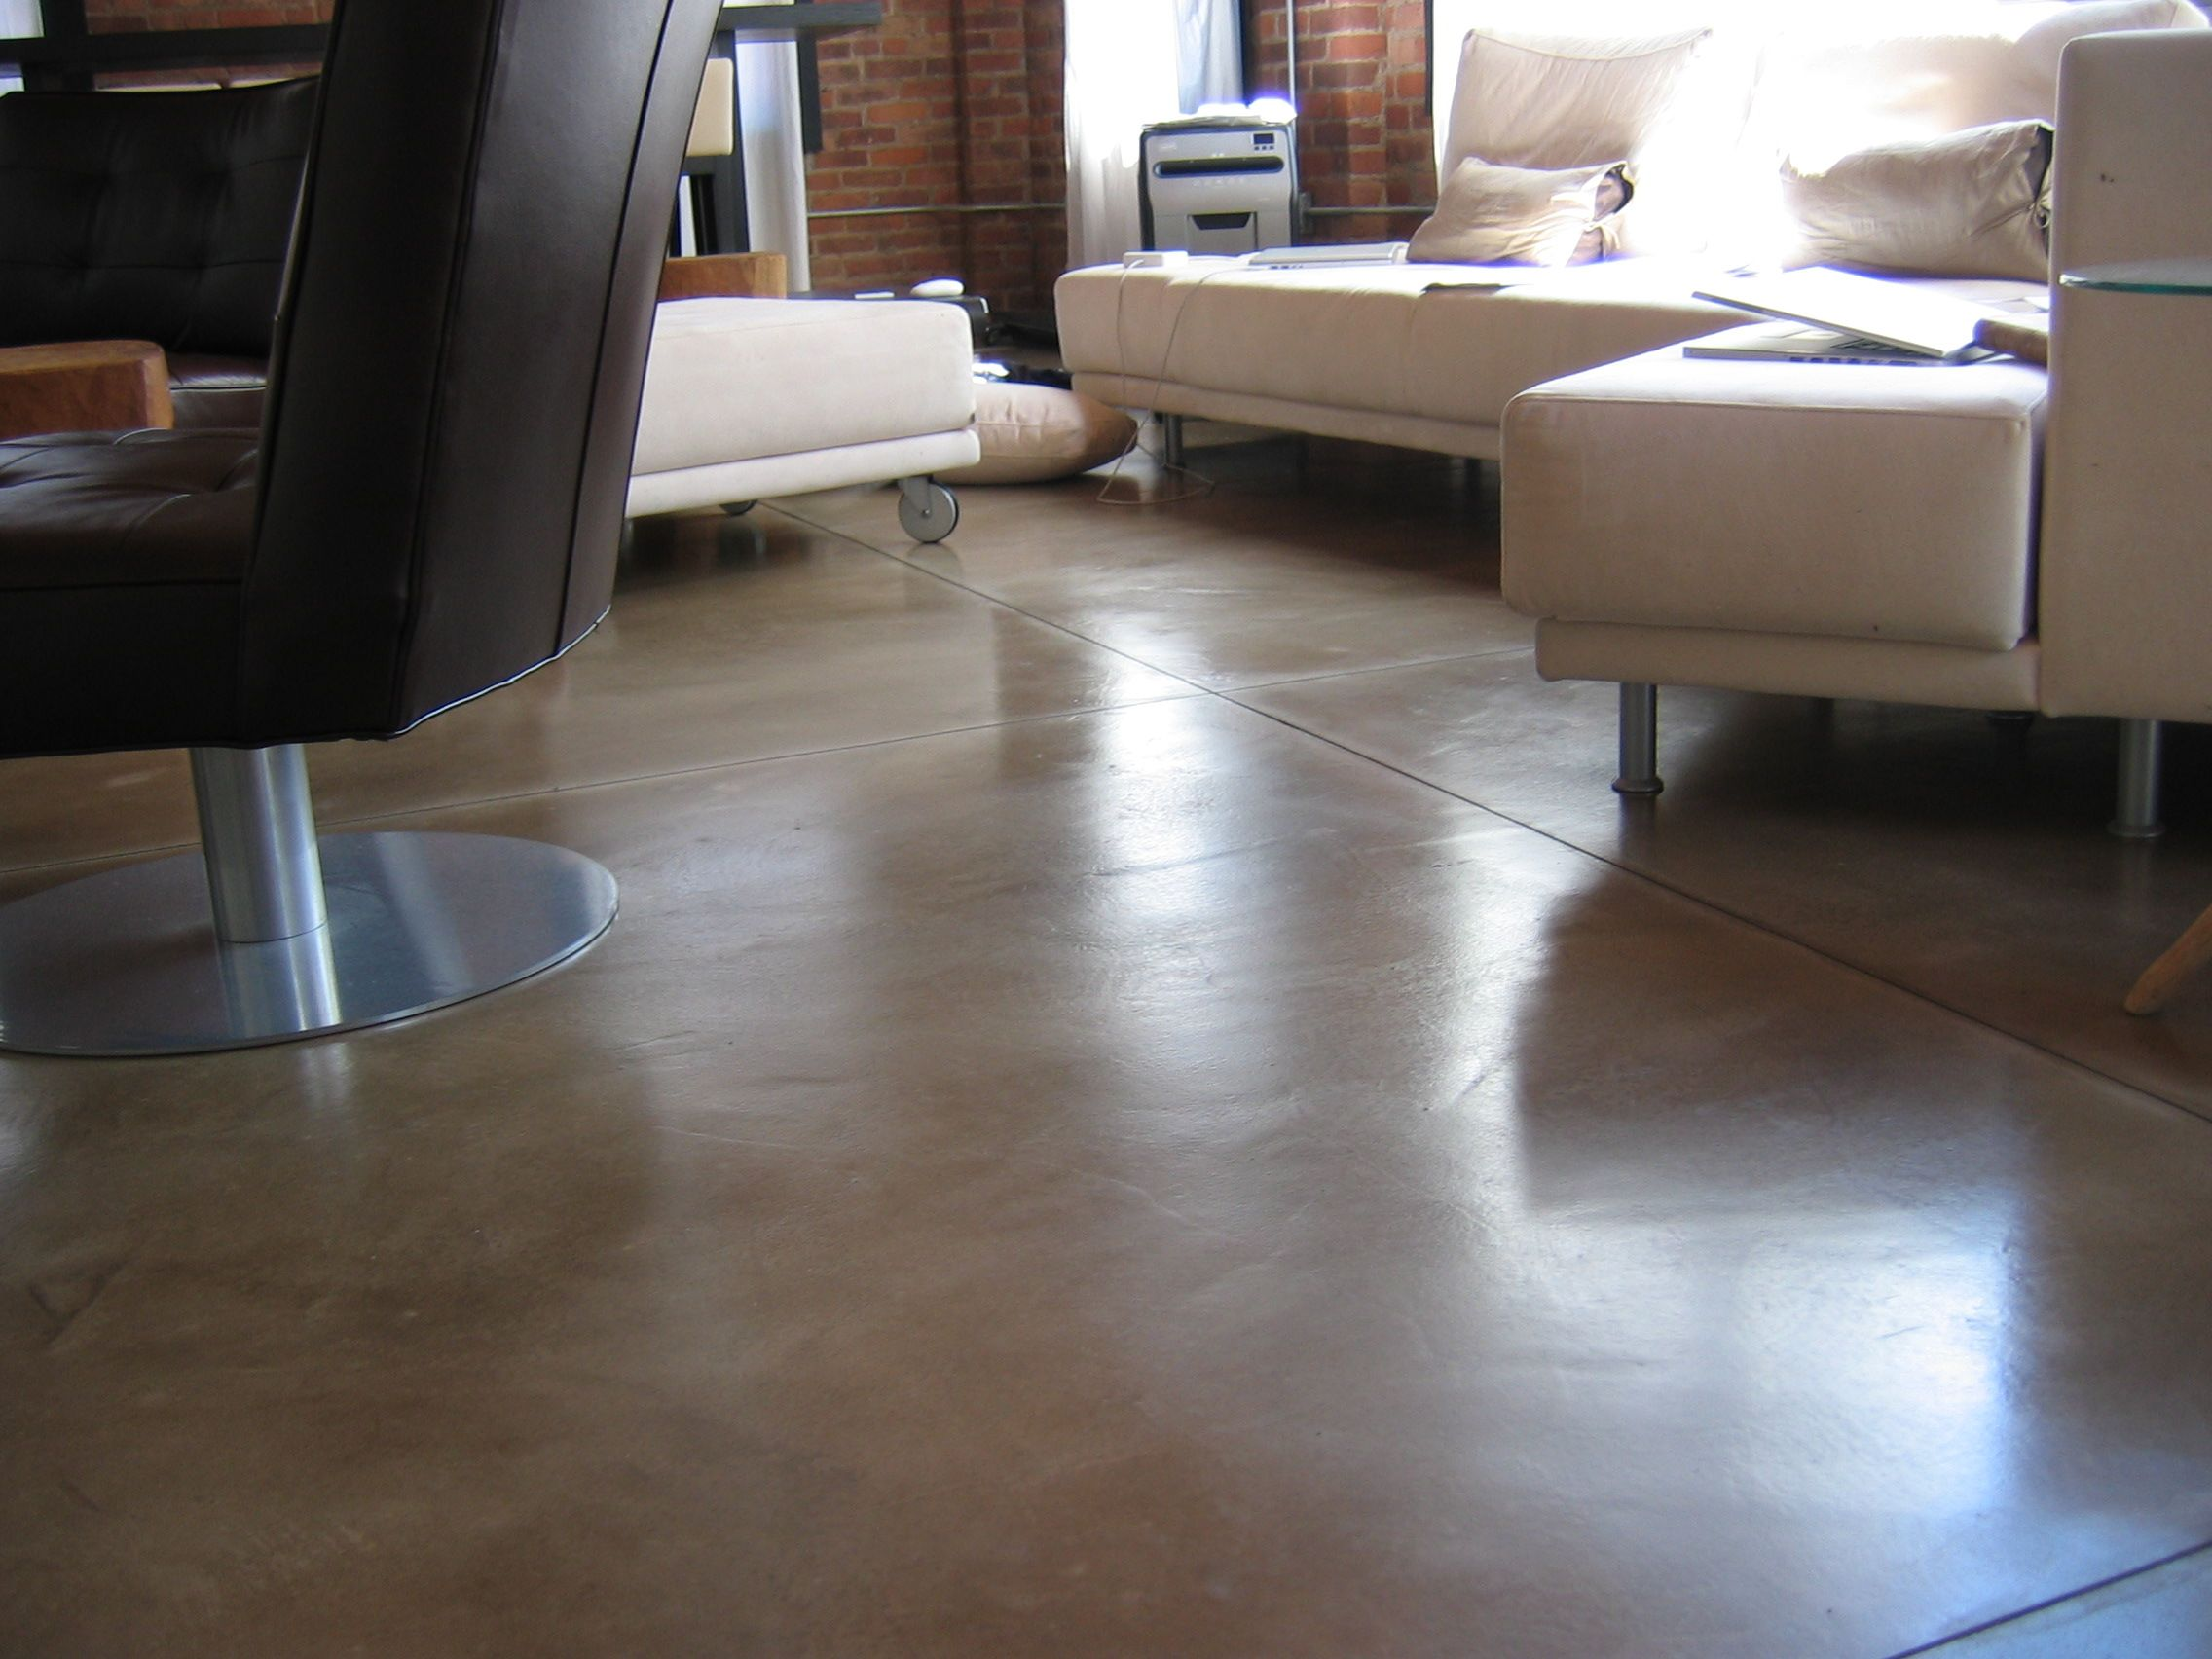 Garage Floor Paint In Basement Painted Concrete Floors Garage Floor Epoxy Decorative Concrete